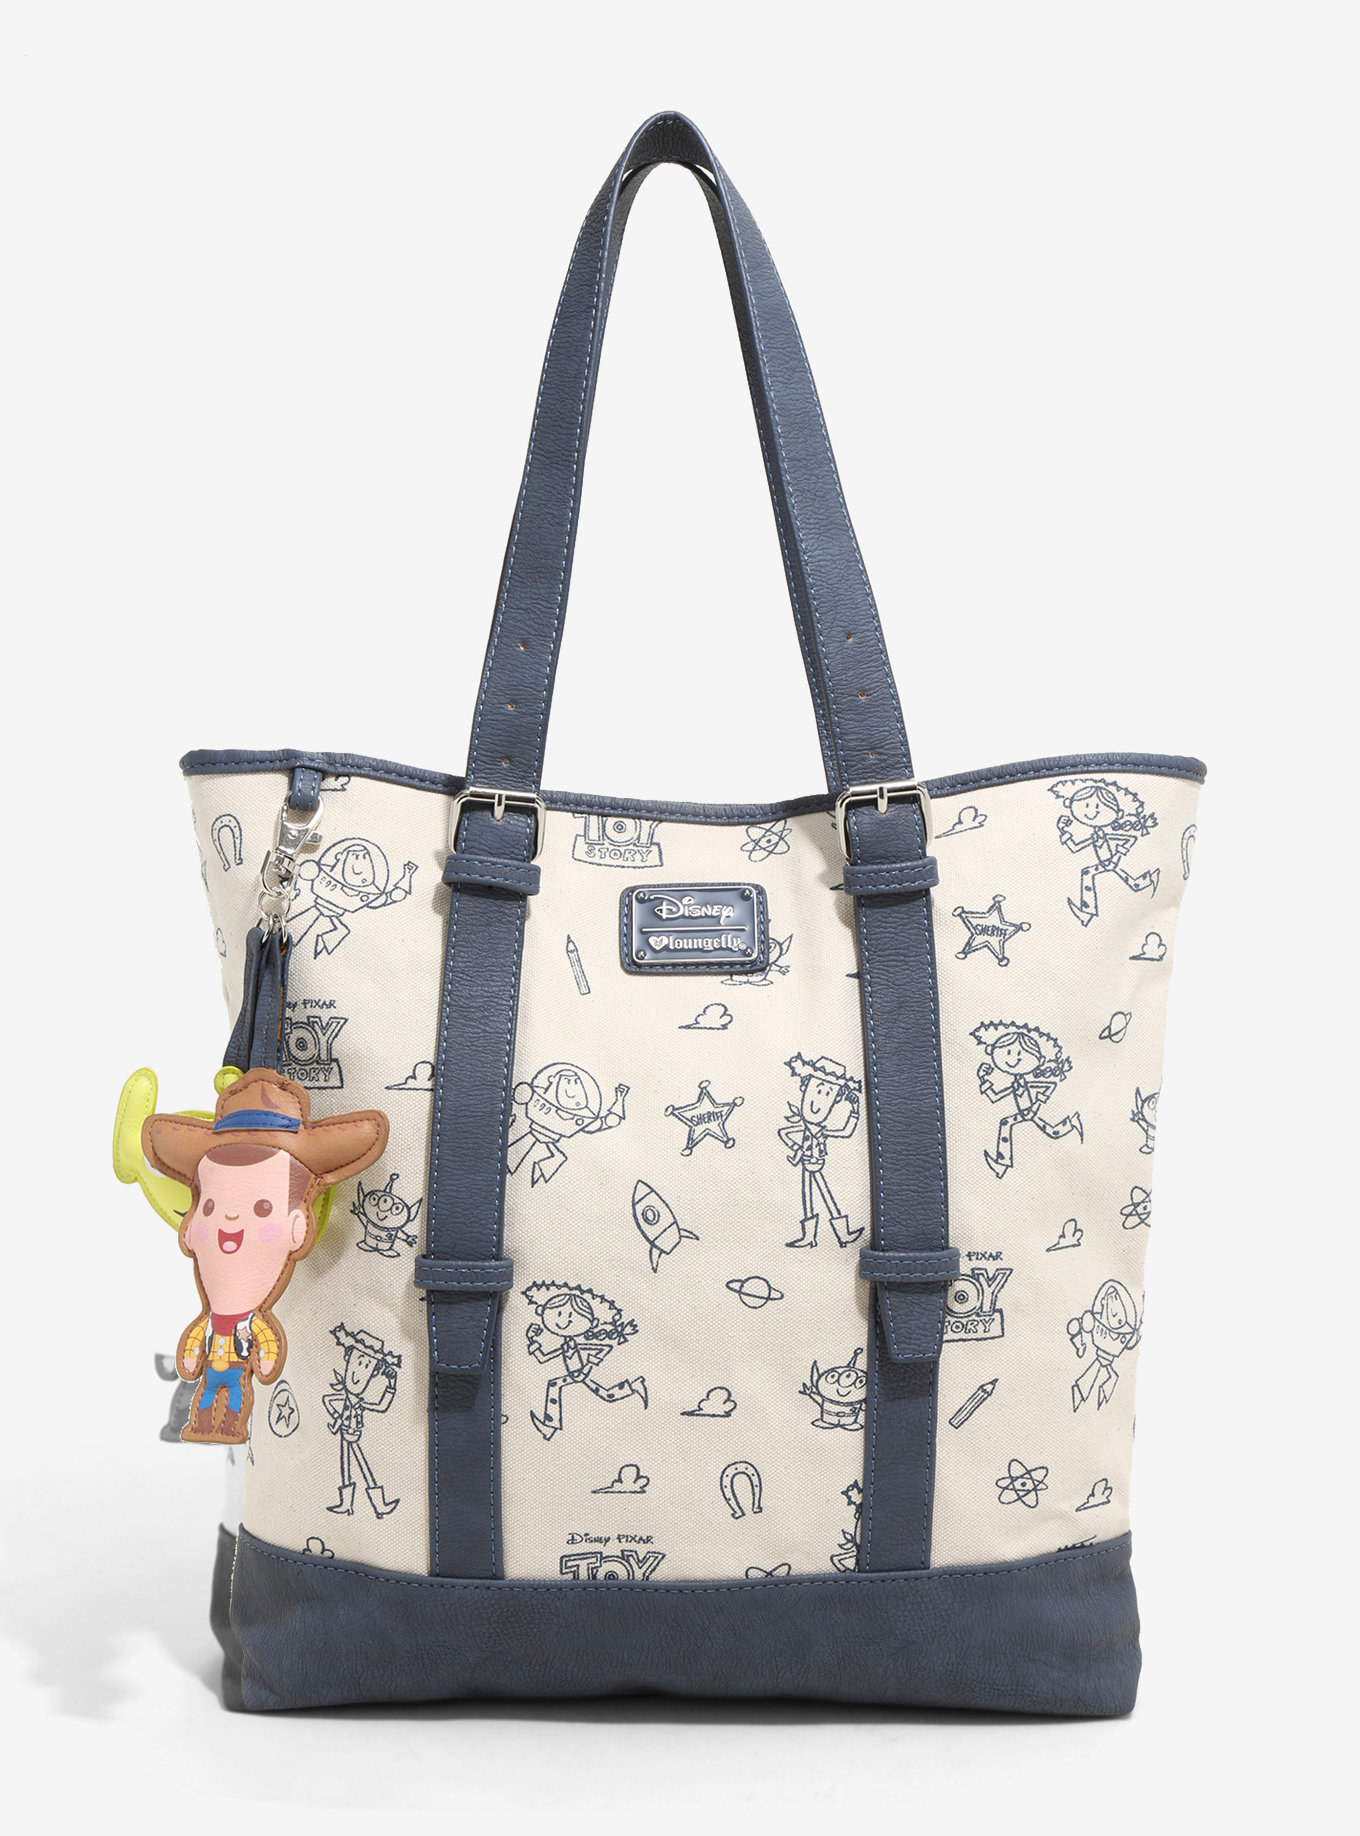 36 disney products that ll totally make your day 8 this toy story tote bag that you can fill with all your toys so they don t miss you when you leave the house